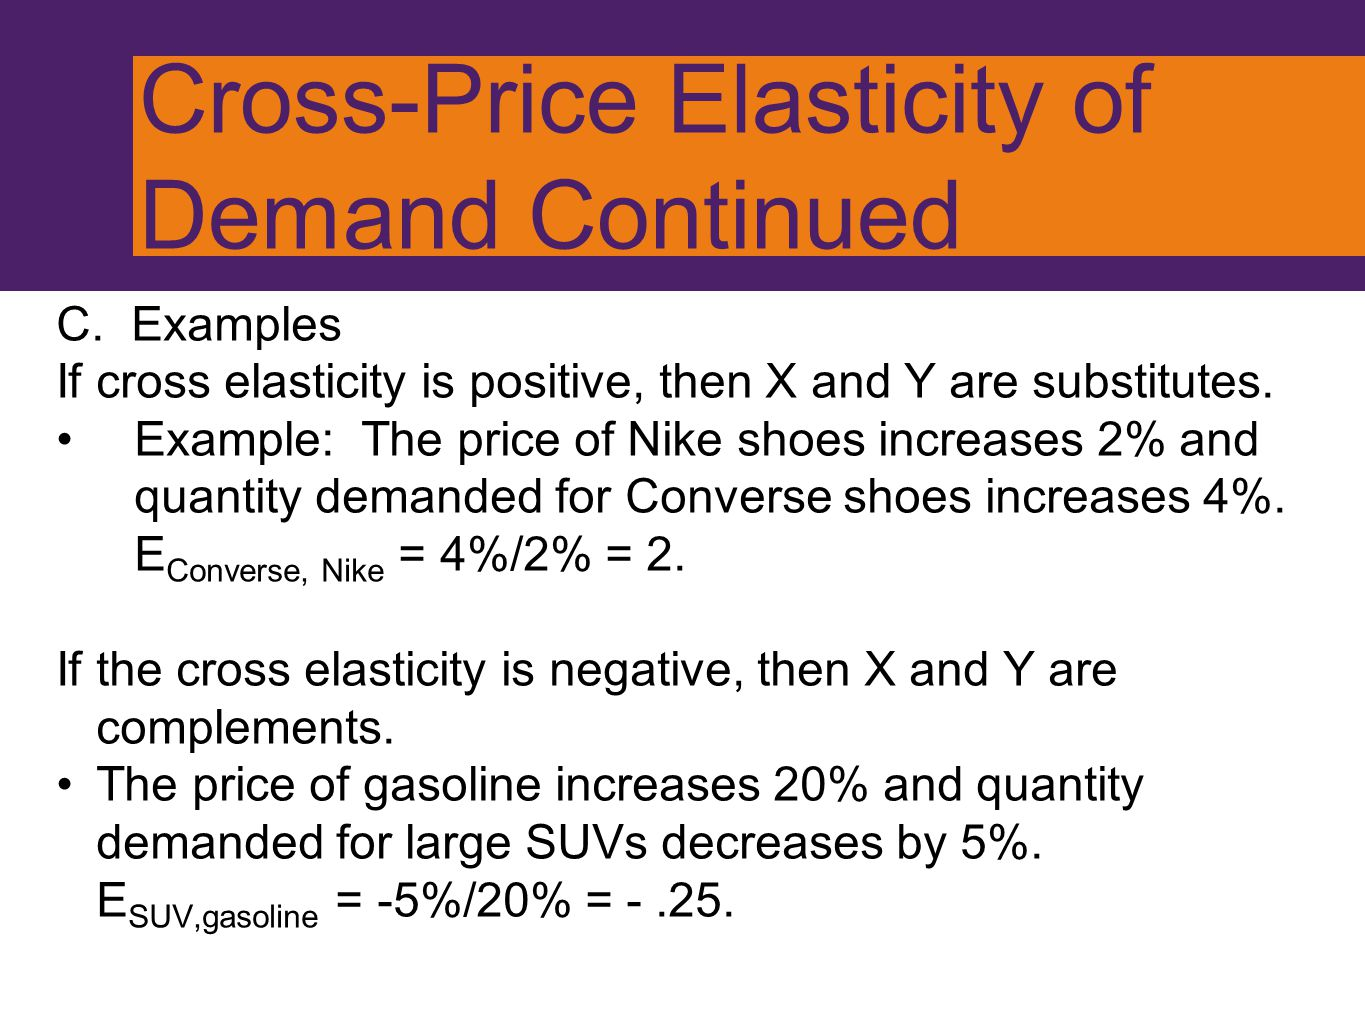 Cross-Price Elasticity of Demand Continued